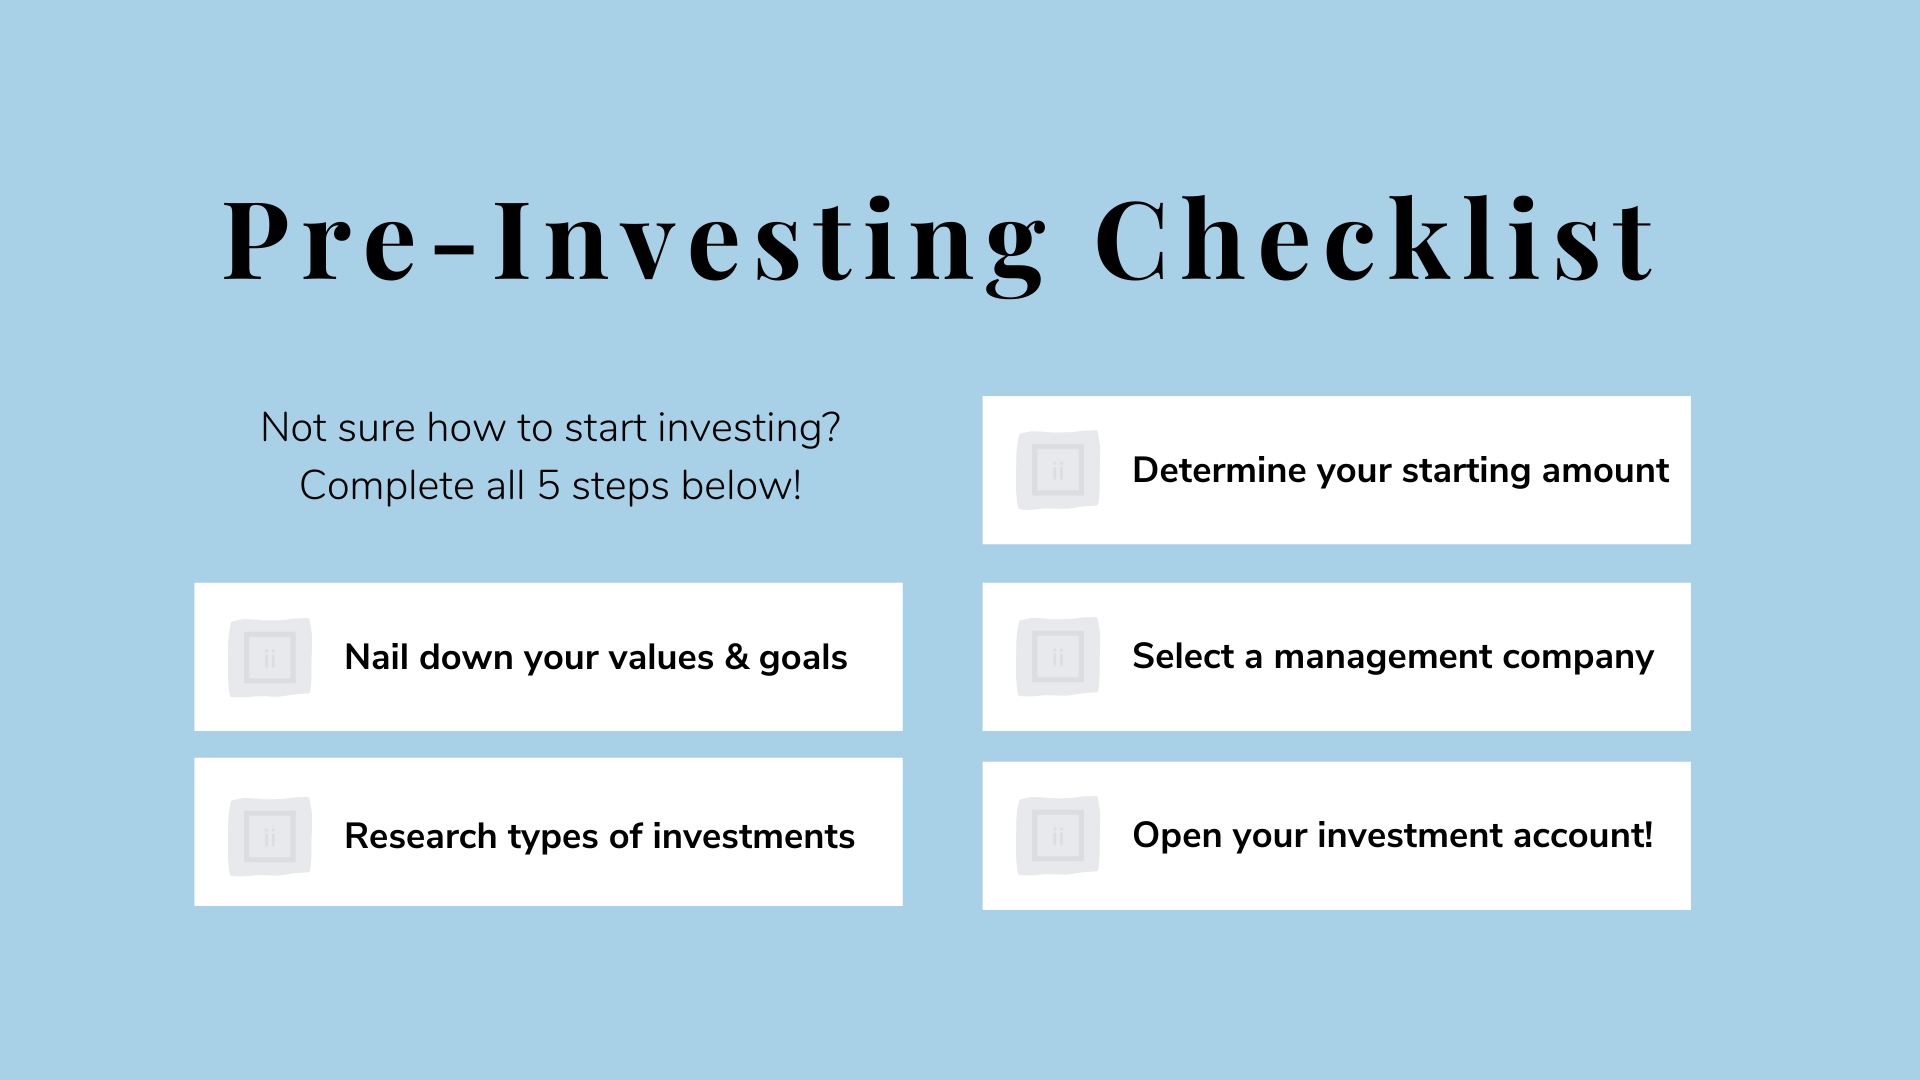 Pre-Investing Checklist 2021 Invested Interests